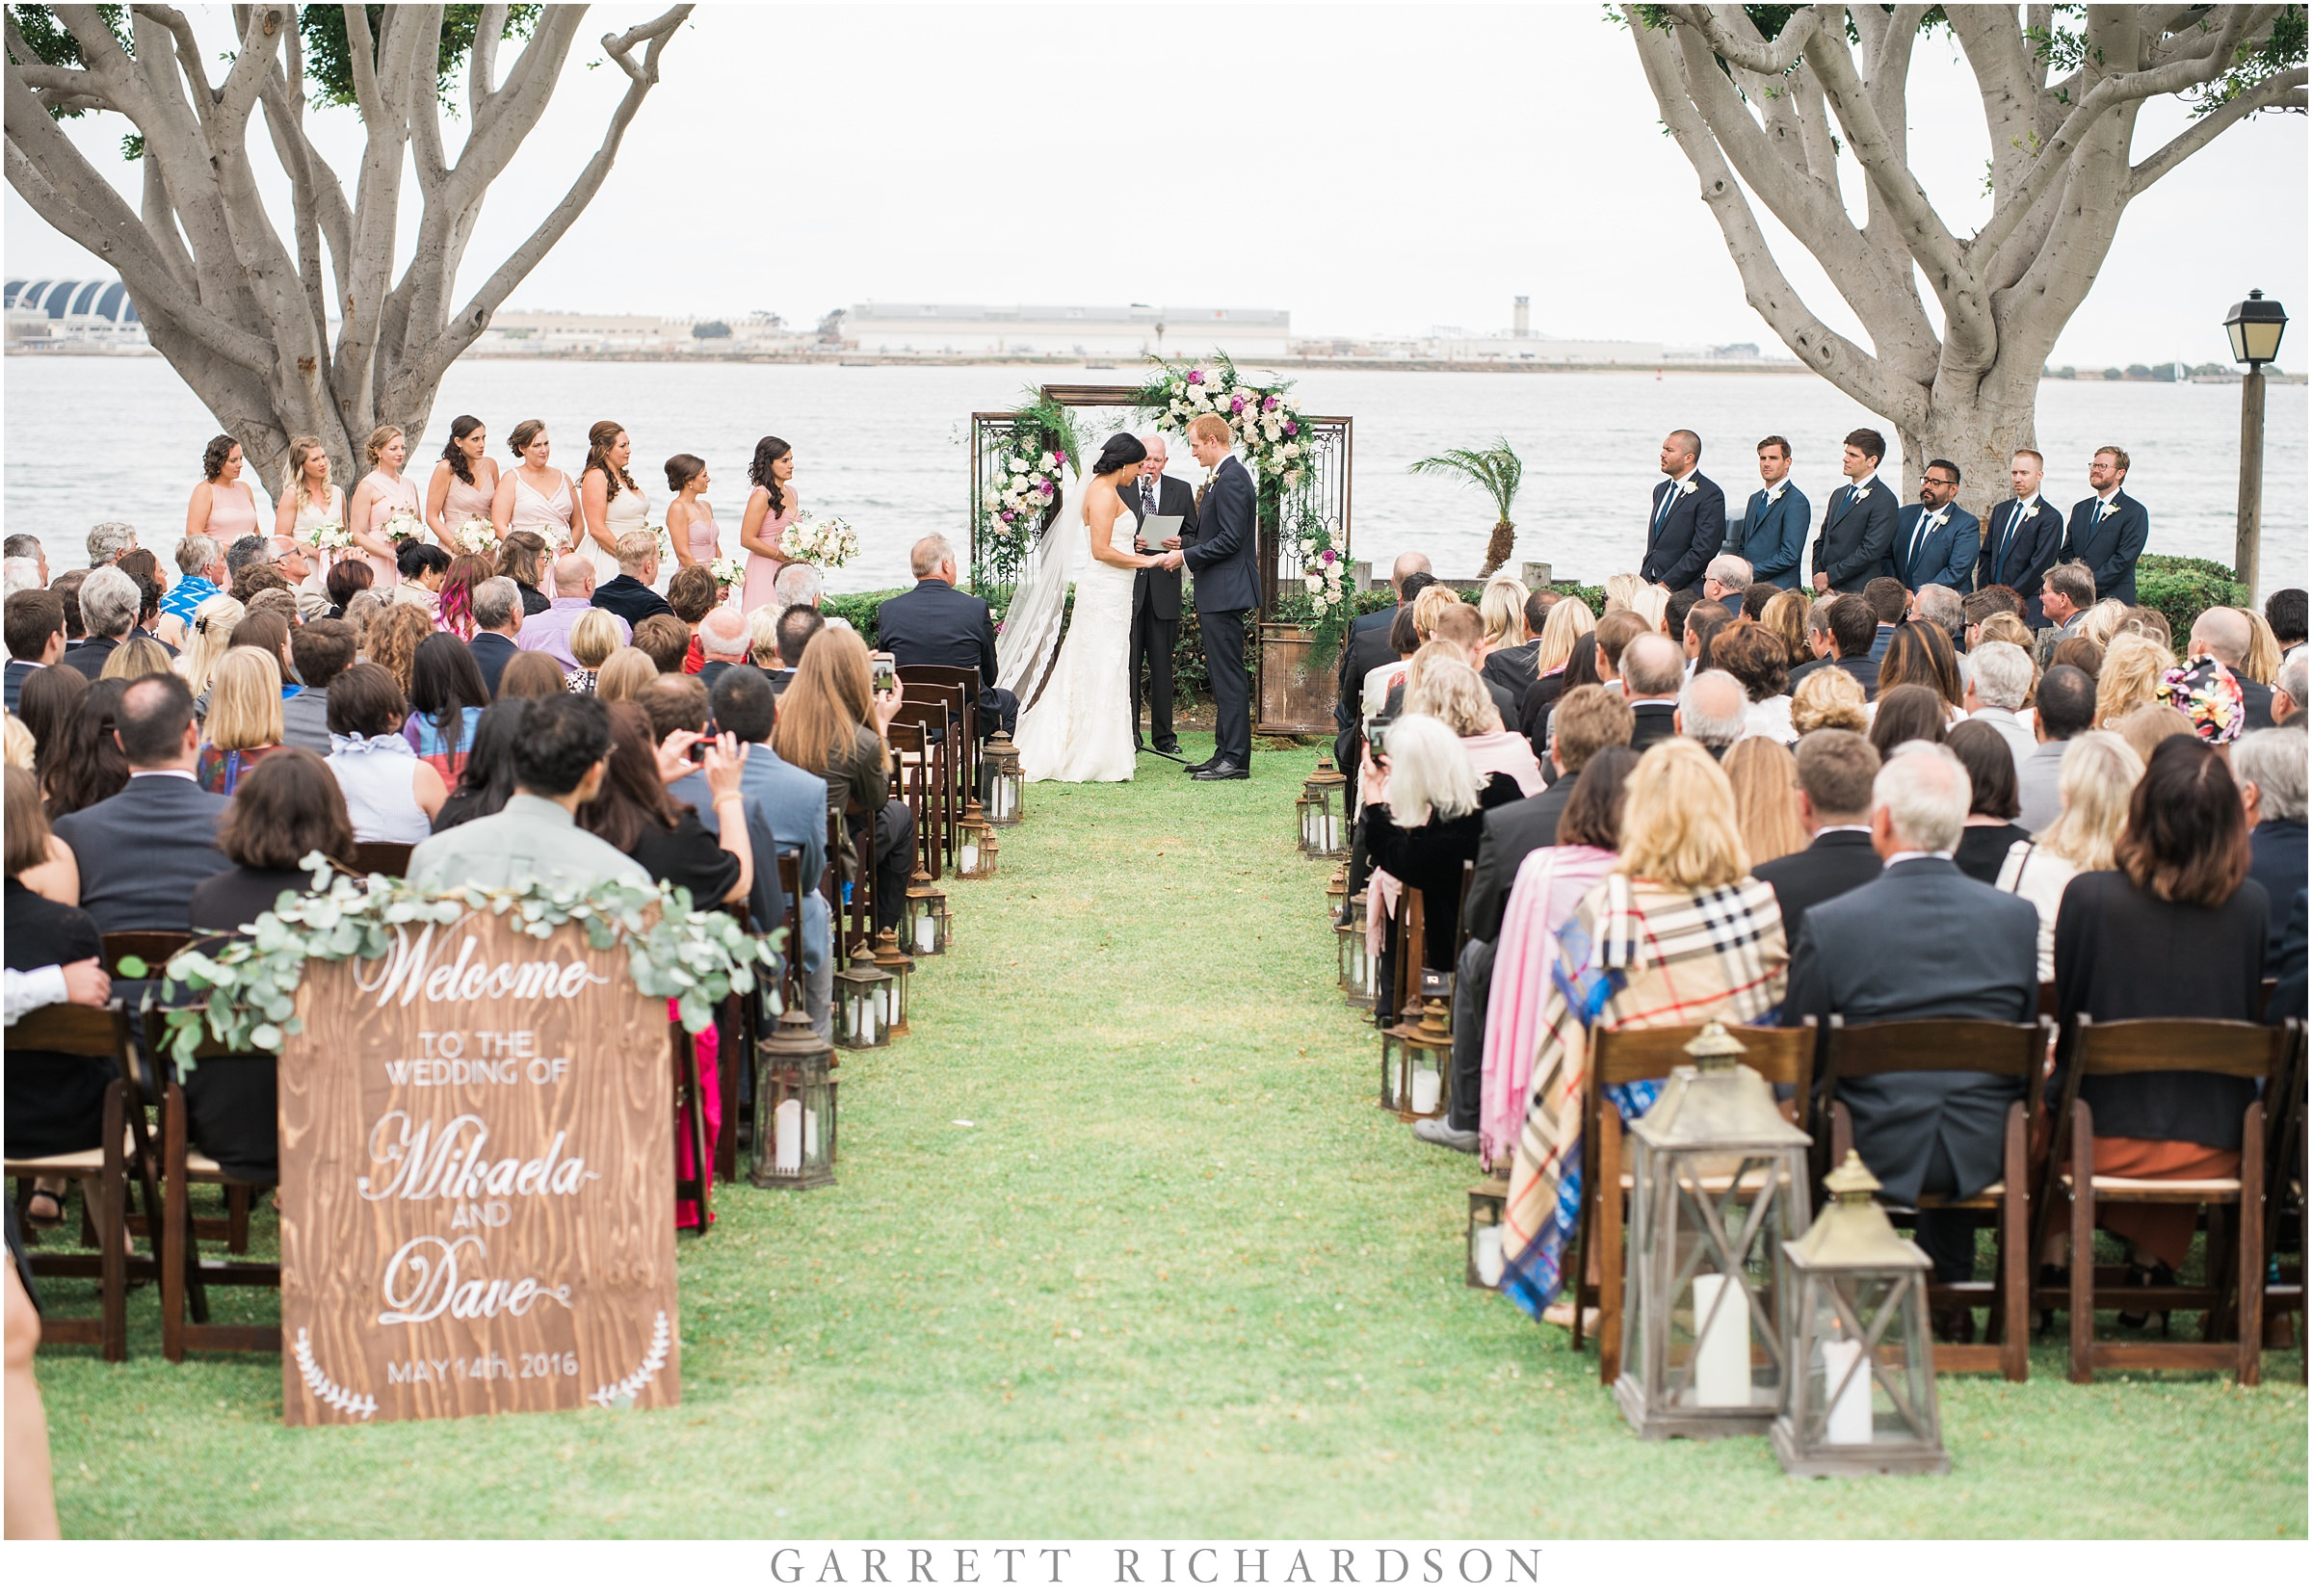 San diego harbor wedding mikaela dave garrett richardson san diego wedding san diego ocean wedding wedding southern california bride junglespirit Image collections